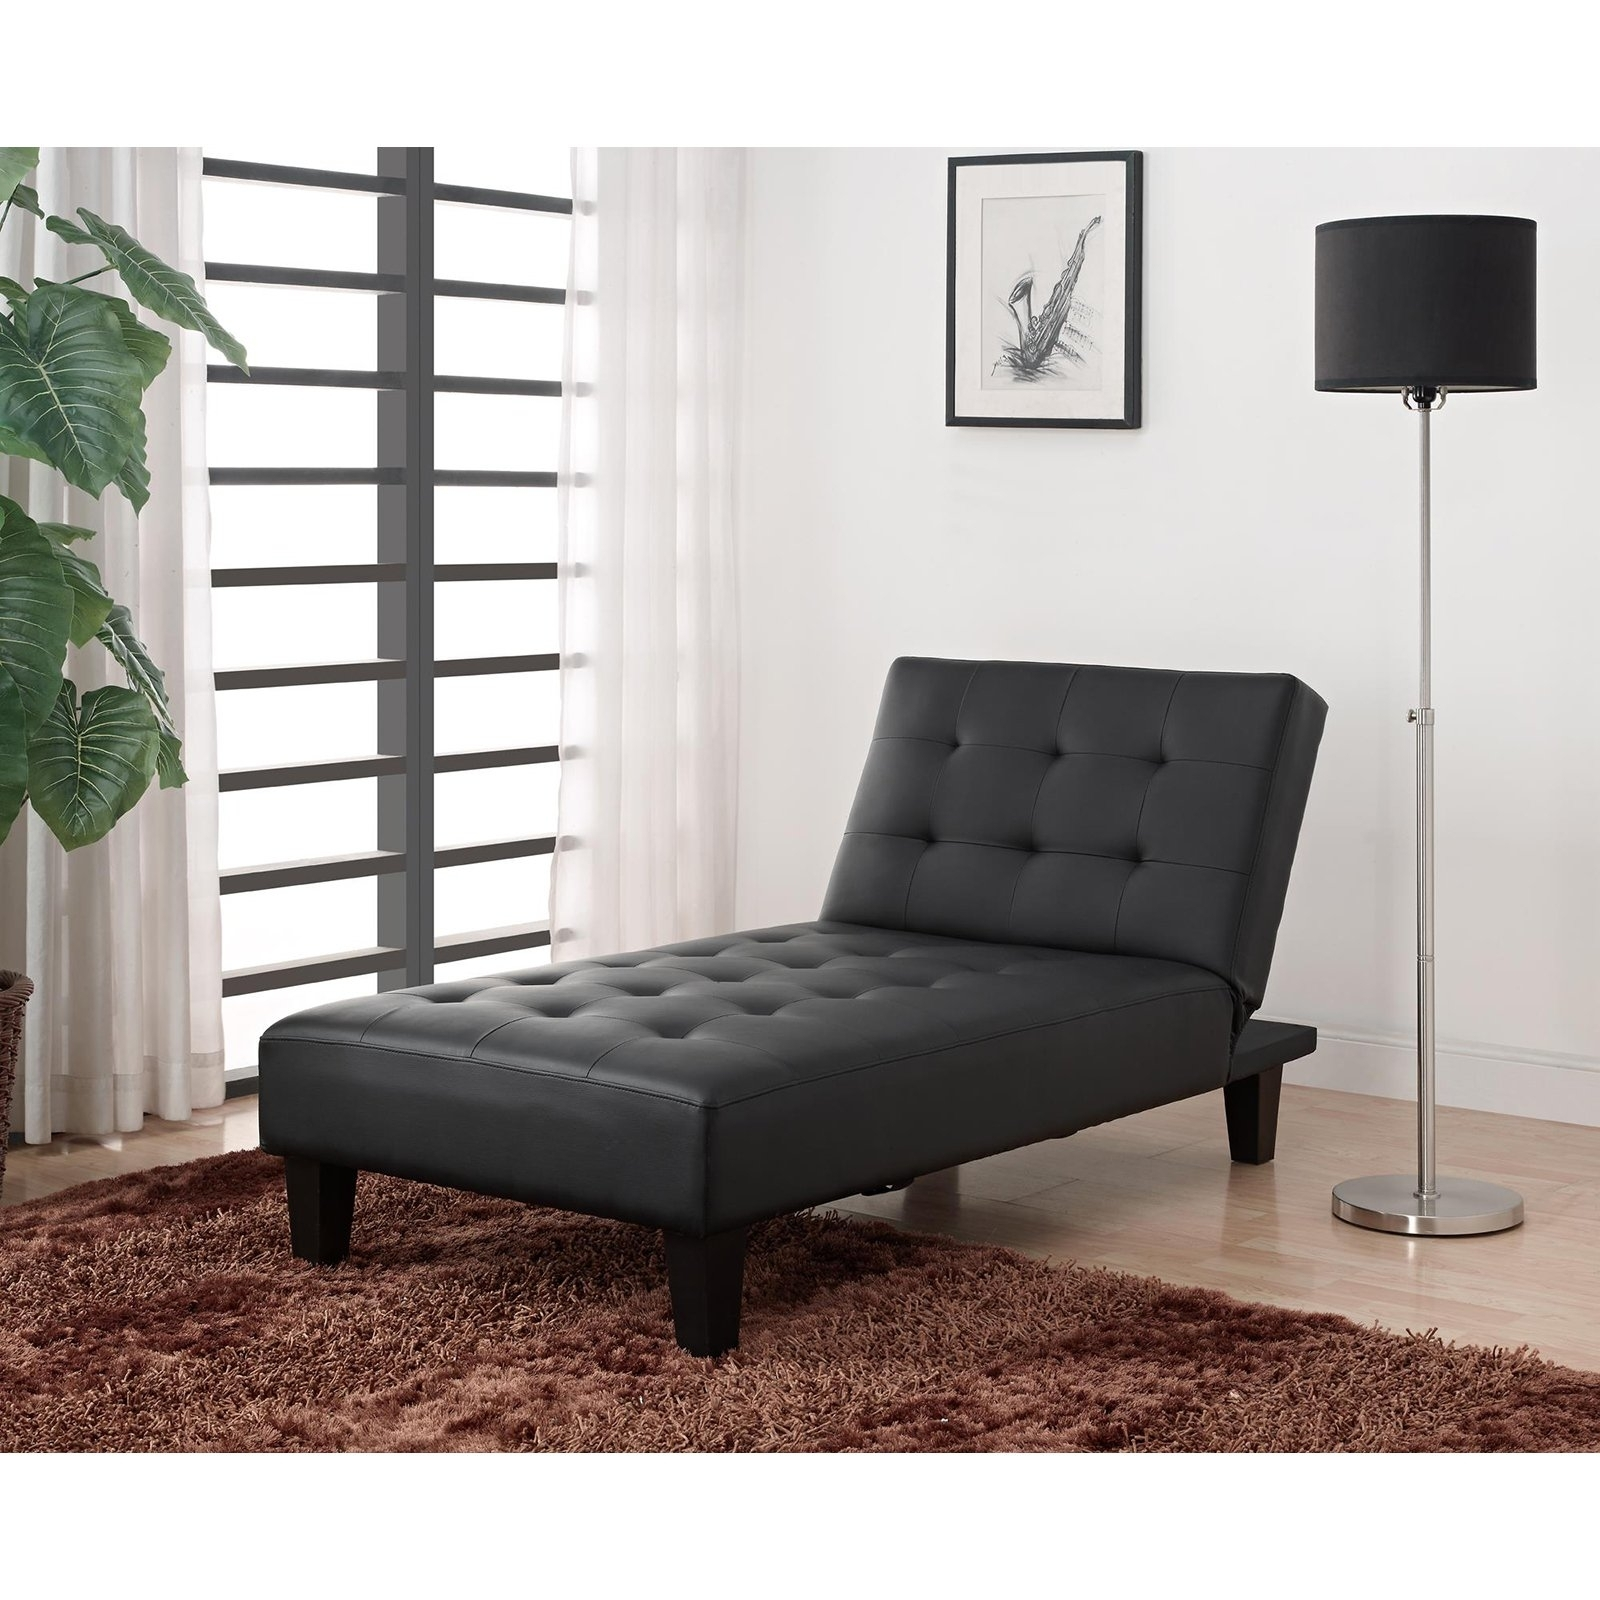 Dhp Emily Faux Leather Chaise Lounge (View 3 of 15)